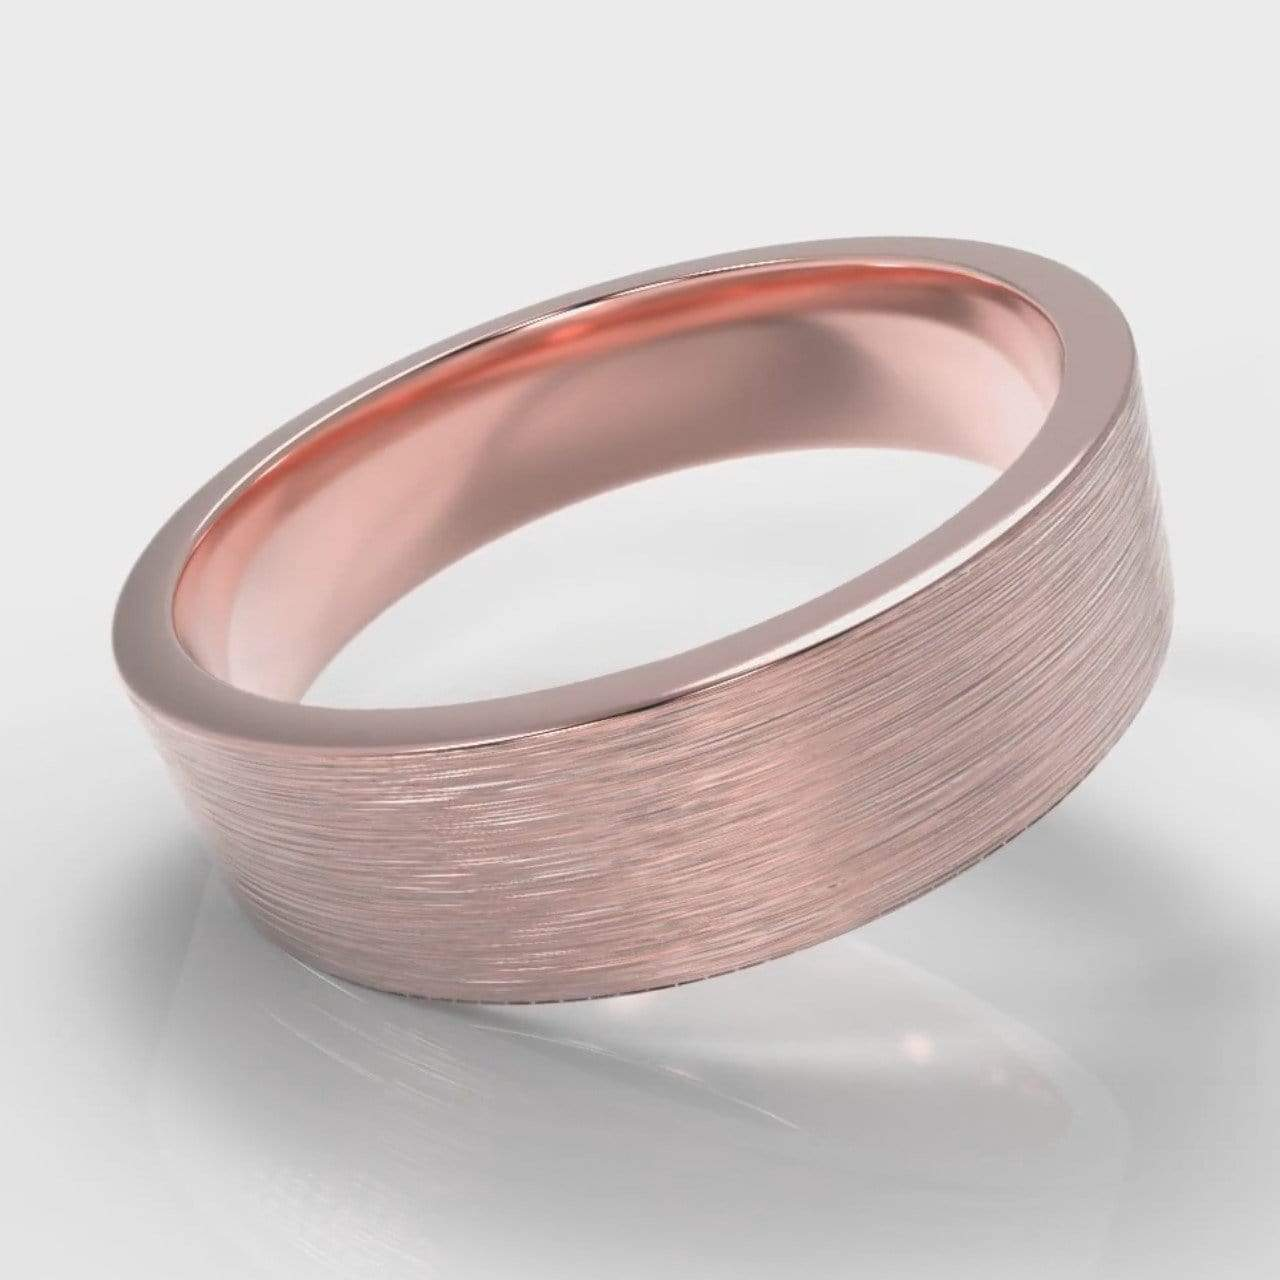 Classic Flat Court Comfort Fit Brushed Wedding Band - 6mm wide - Rose Gold-Wedding Ring-Pure Carats-Pure Carats